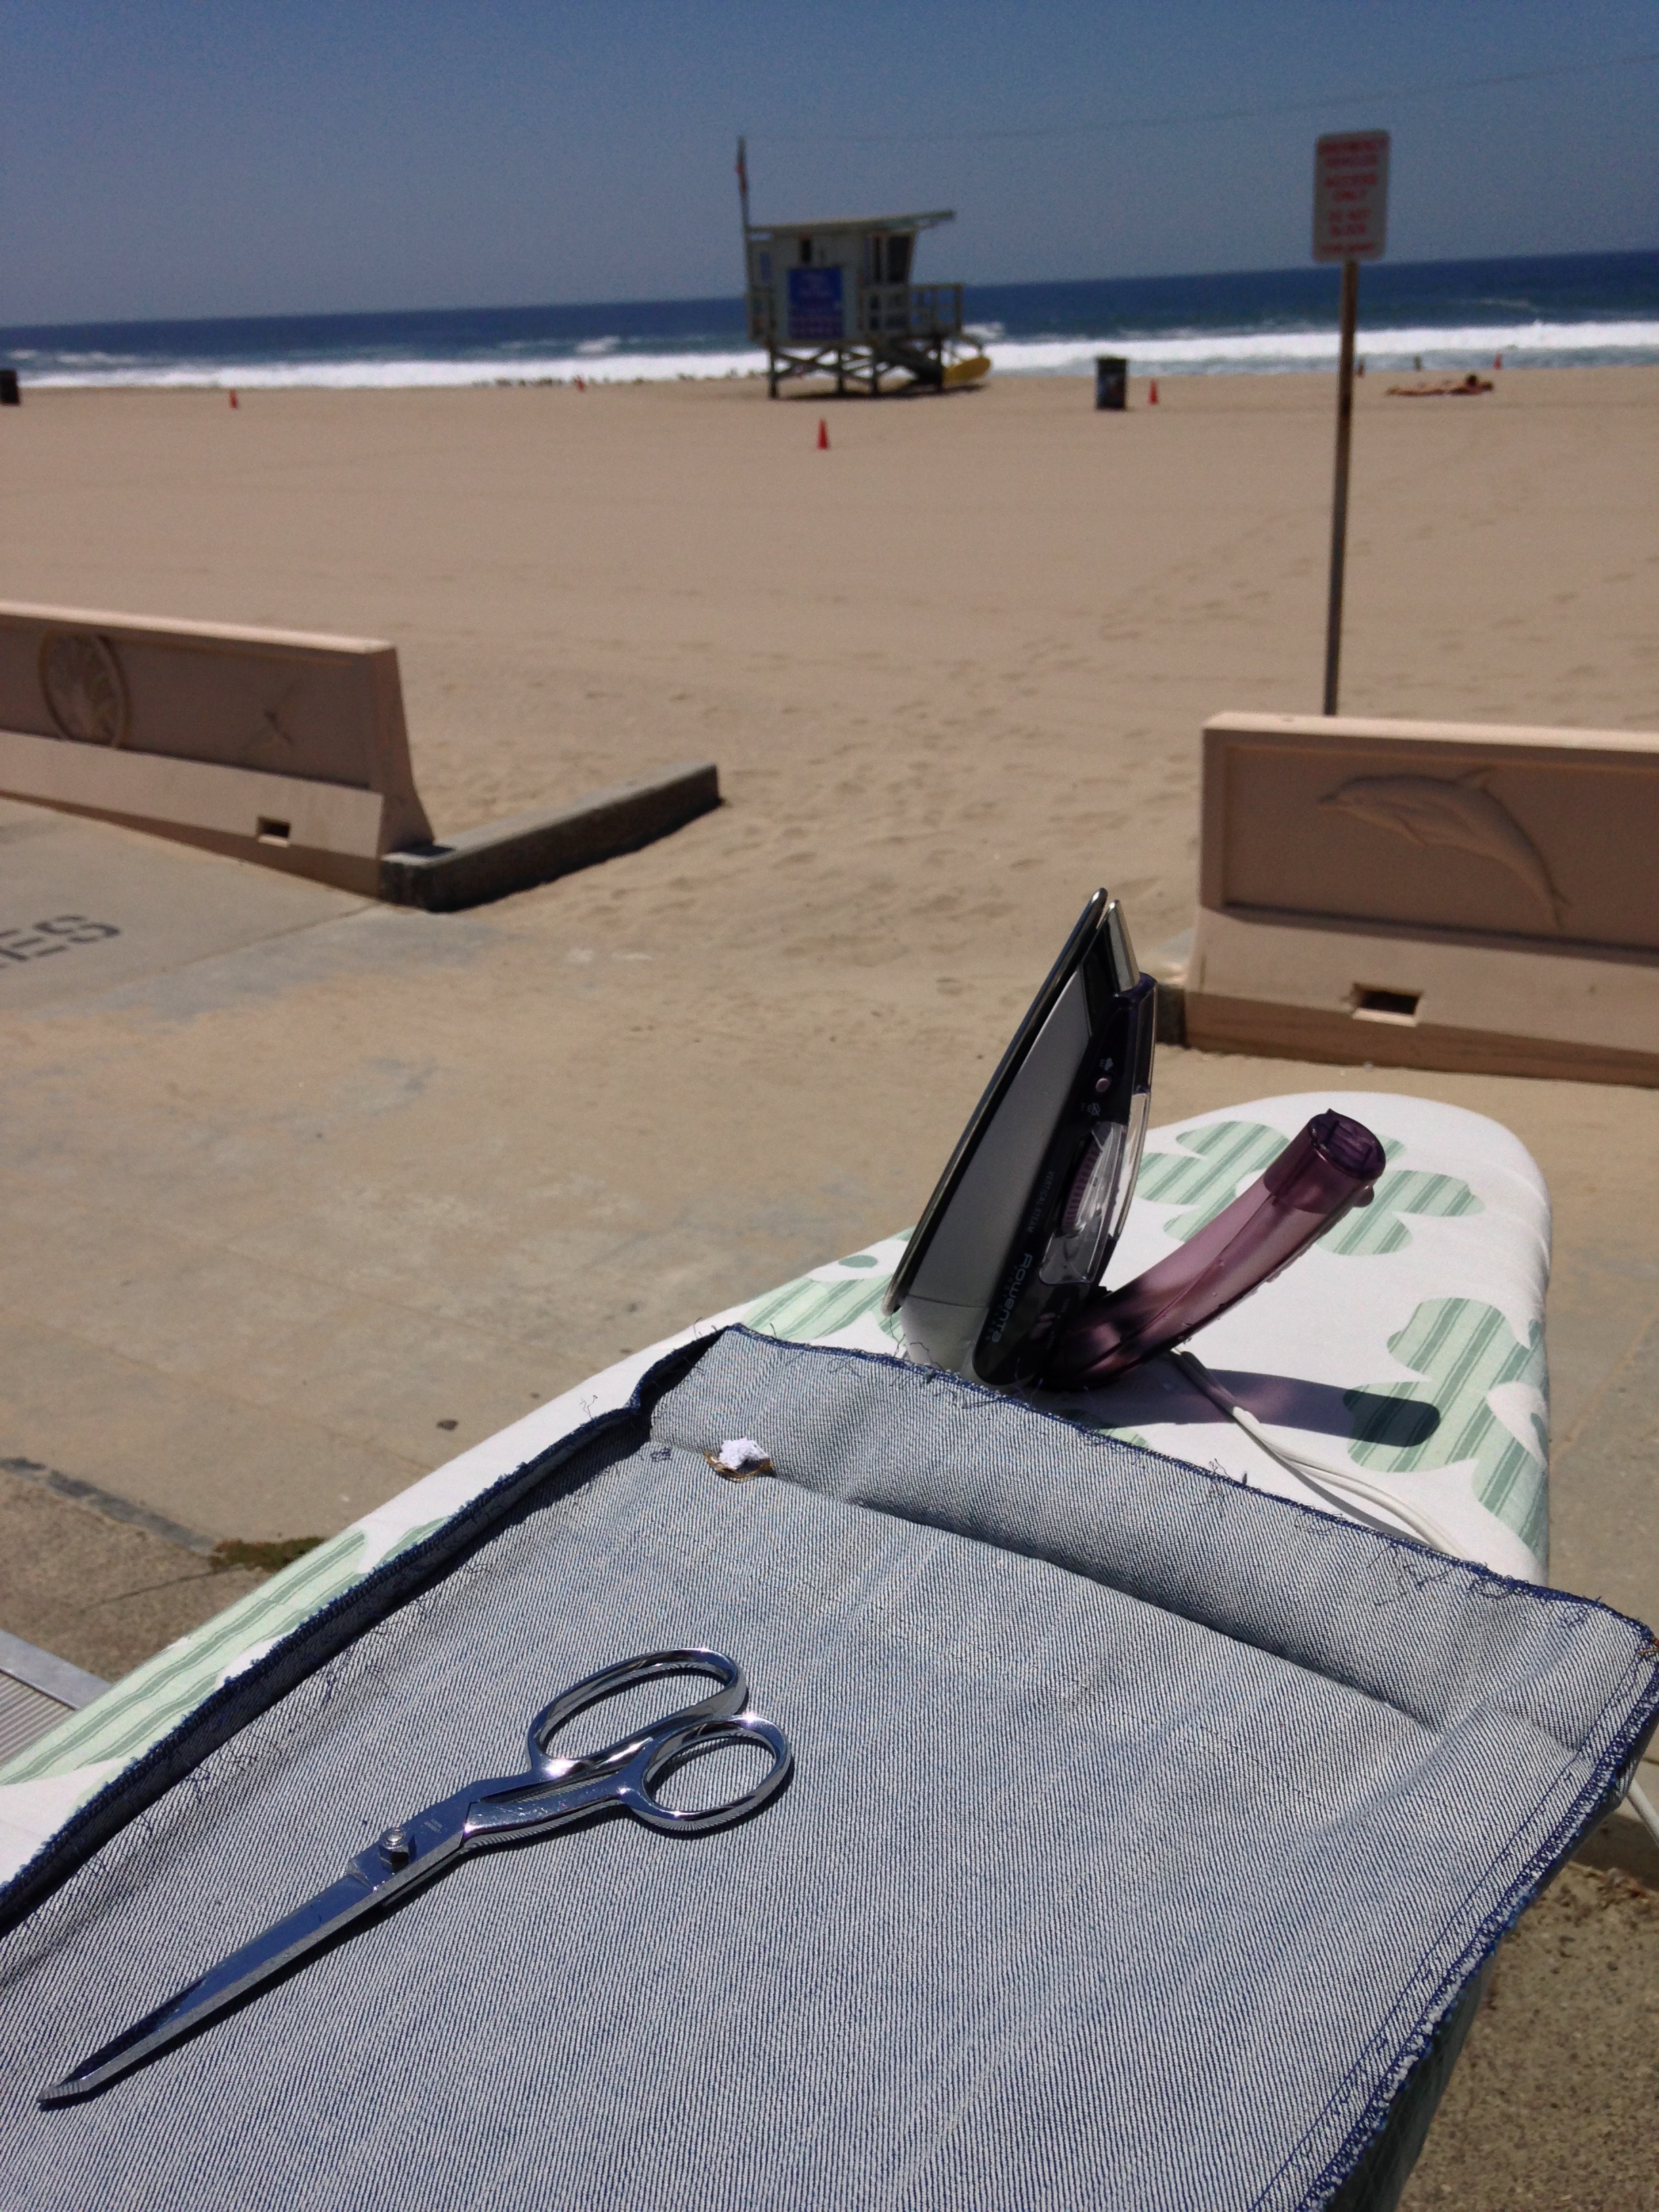 Sometimes working on location looks like this!